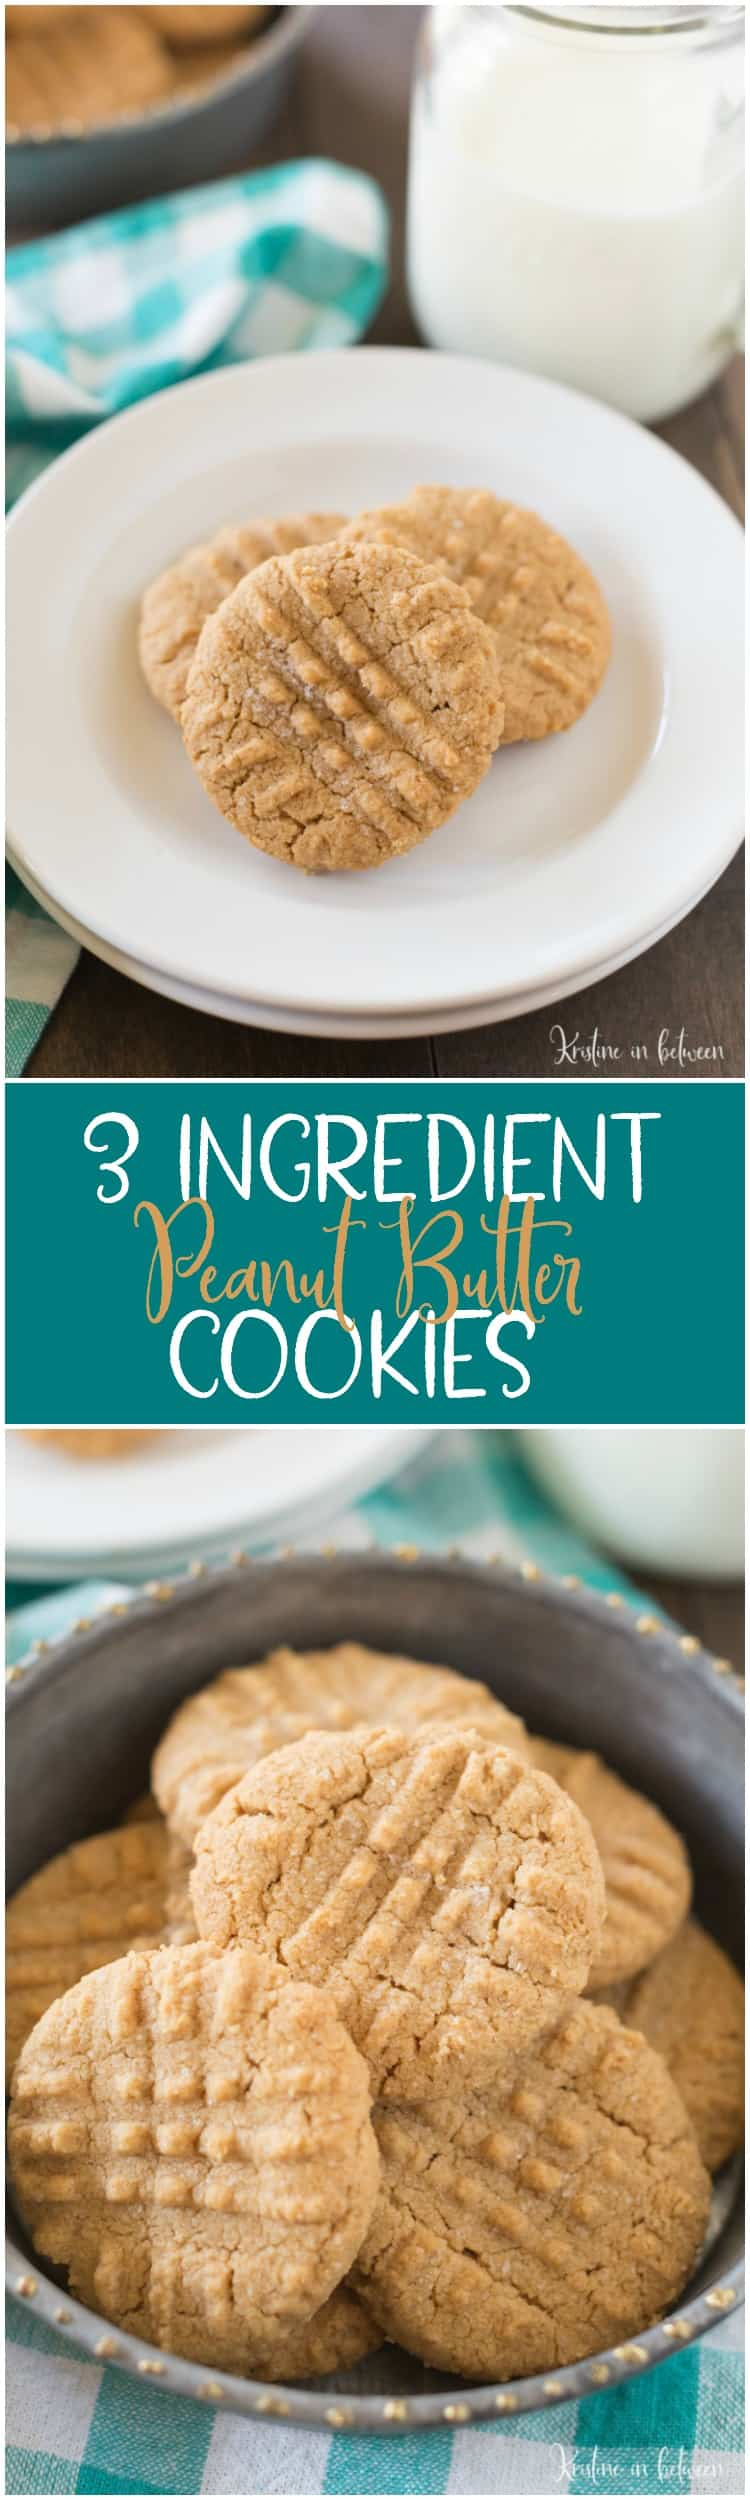 3 Ingredient Peanut Butter Cookies #cookies #peanutbutter #themelrosefamily